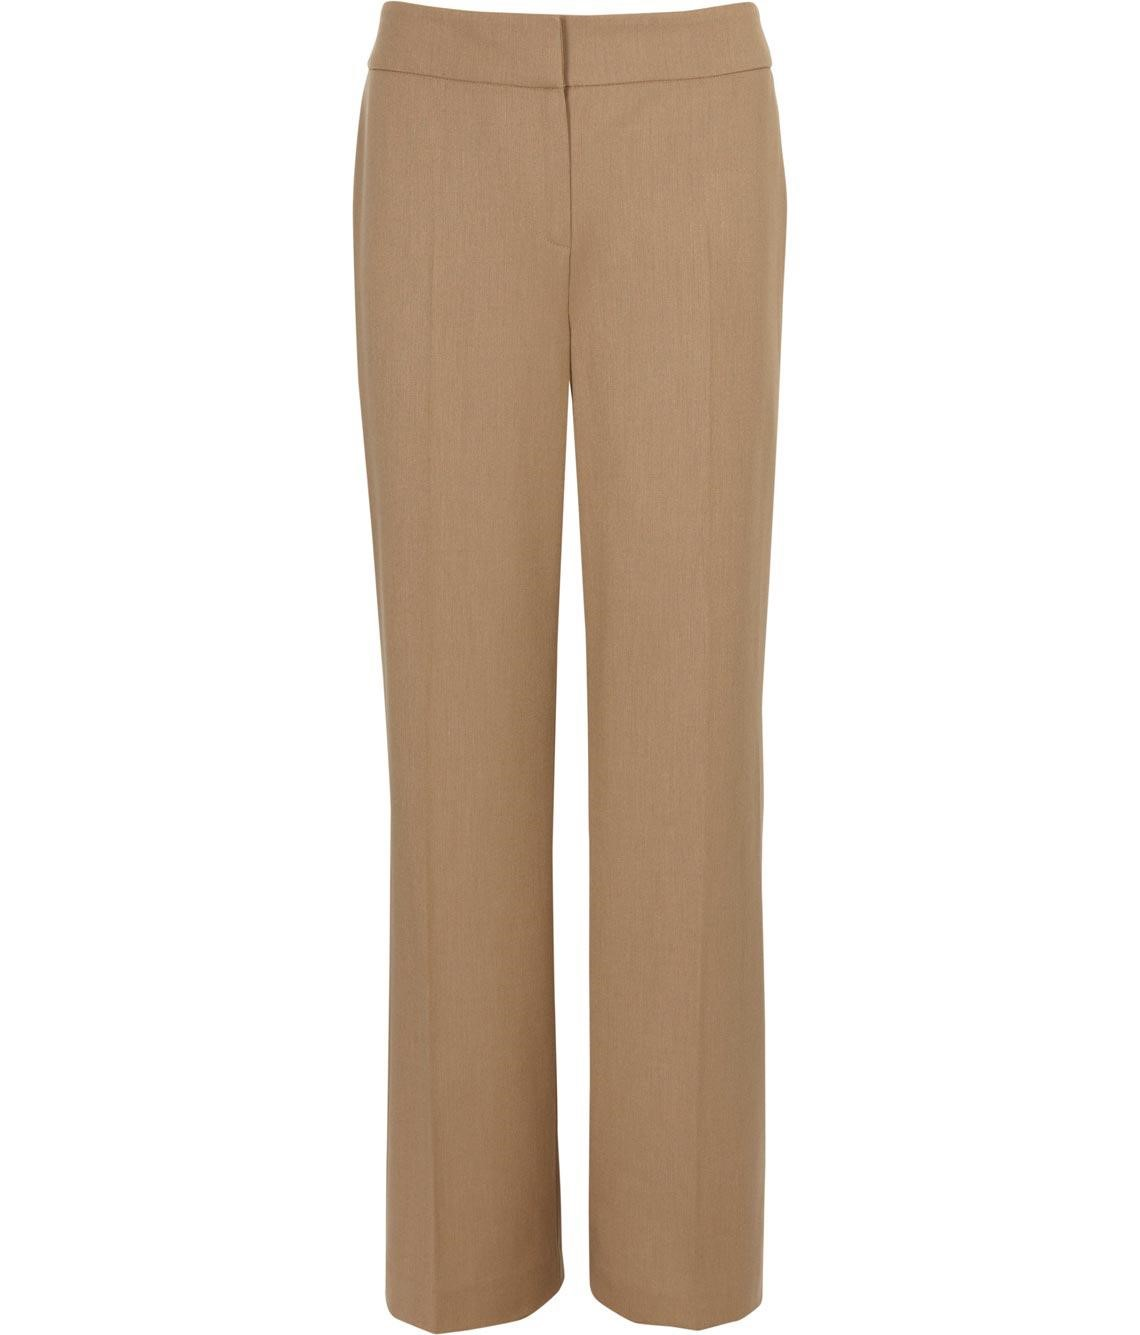 Austin Reed Camel Flannel Trousers, £44